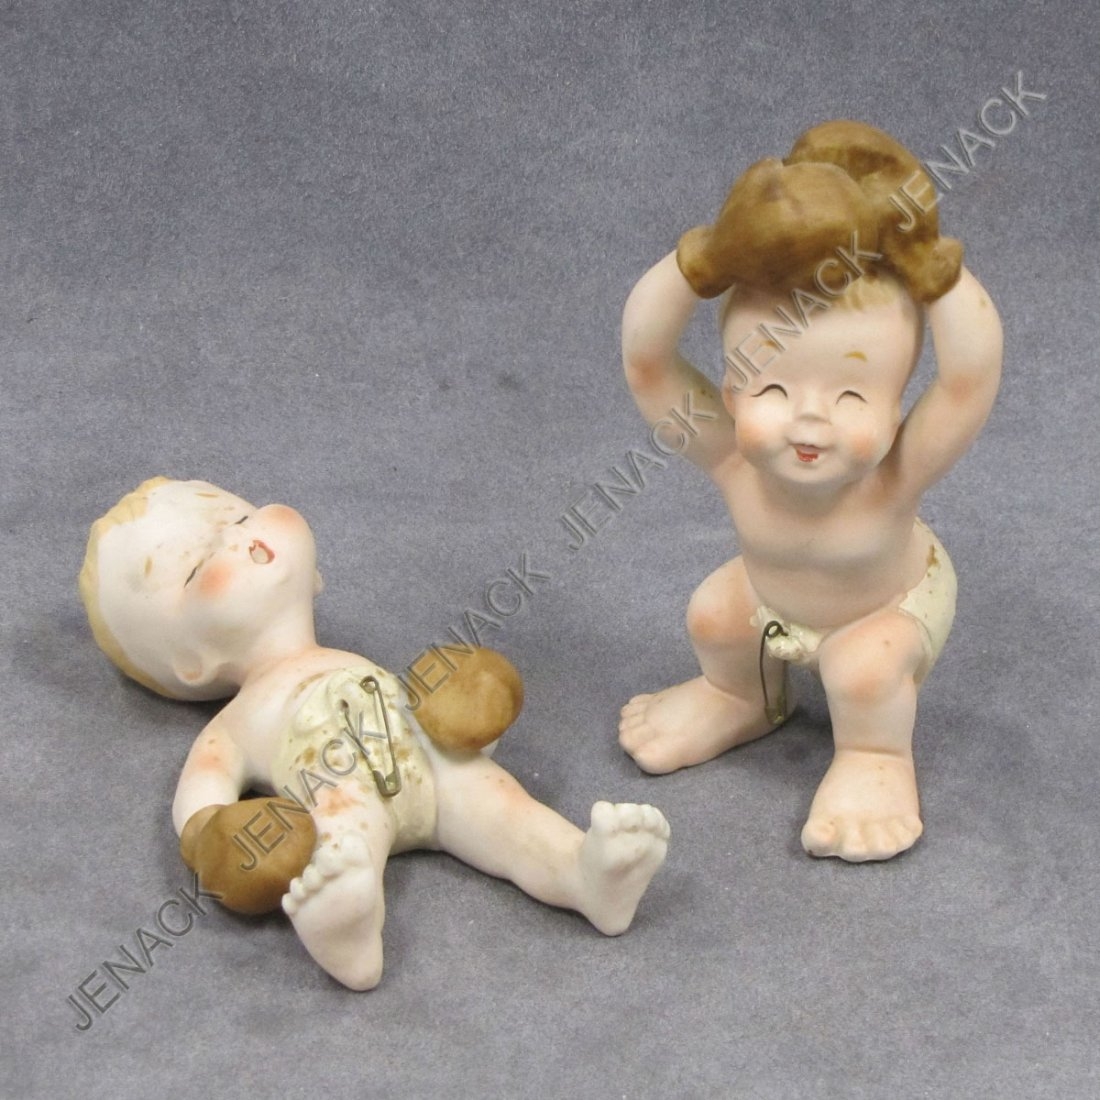 6: LOT (2) JAPANESE BISQUE BOXING BABIES